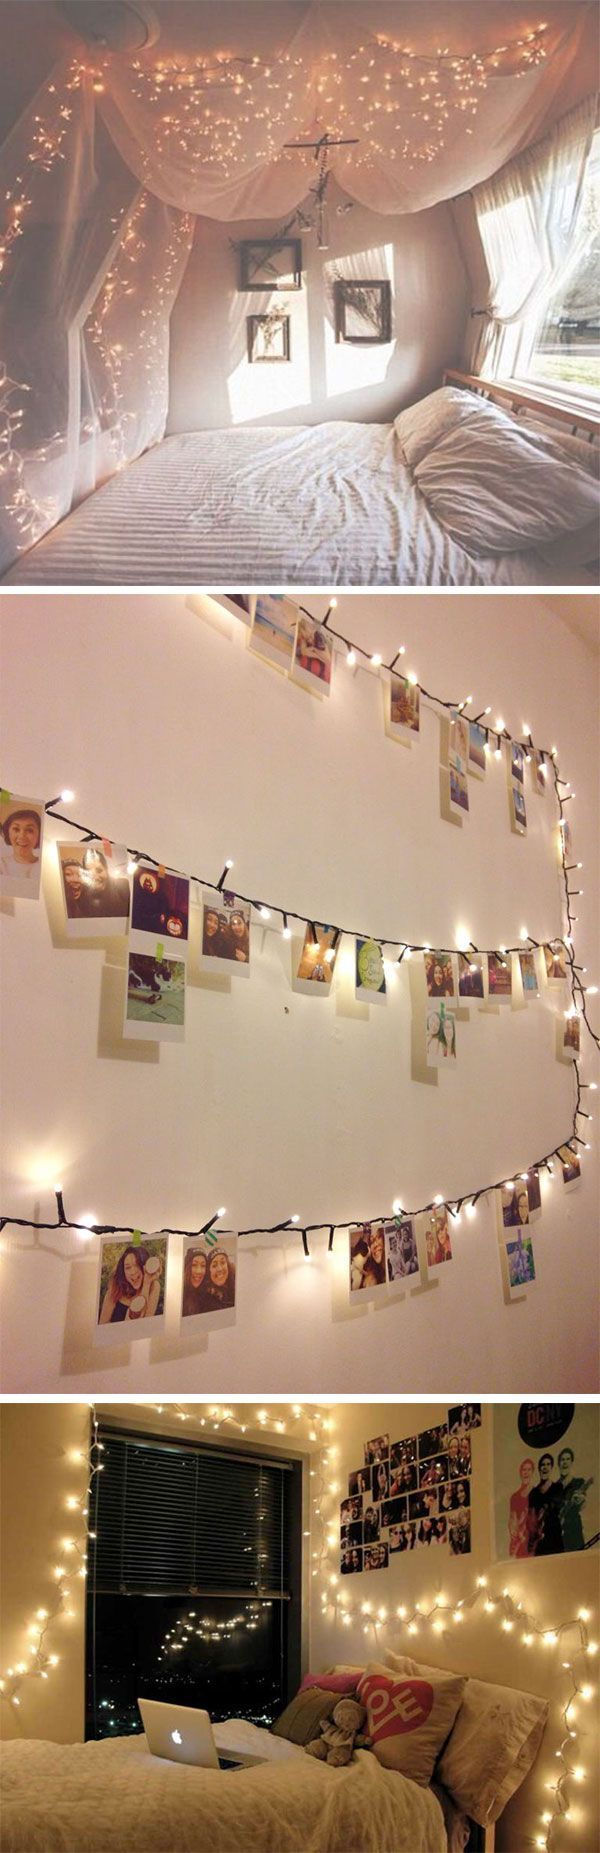 13 ways to use fairy lights to make your home look magical - Pictures Of Bedroom Decorations